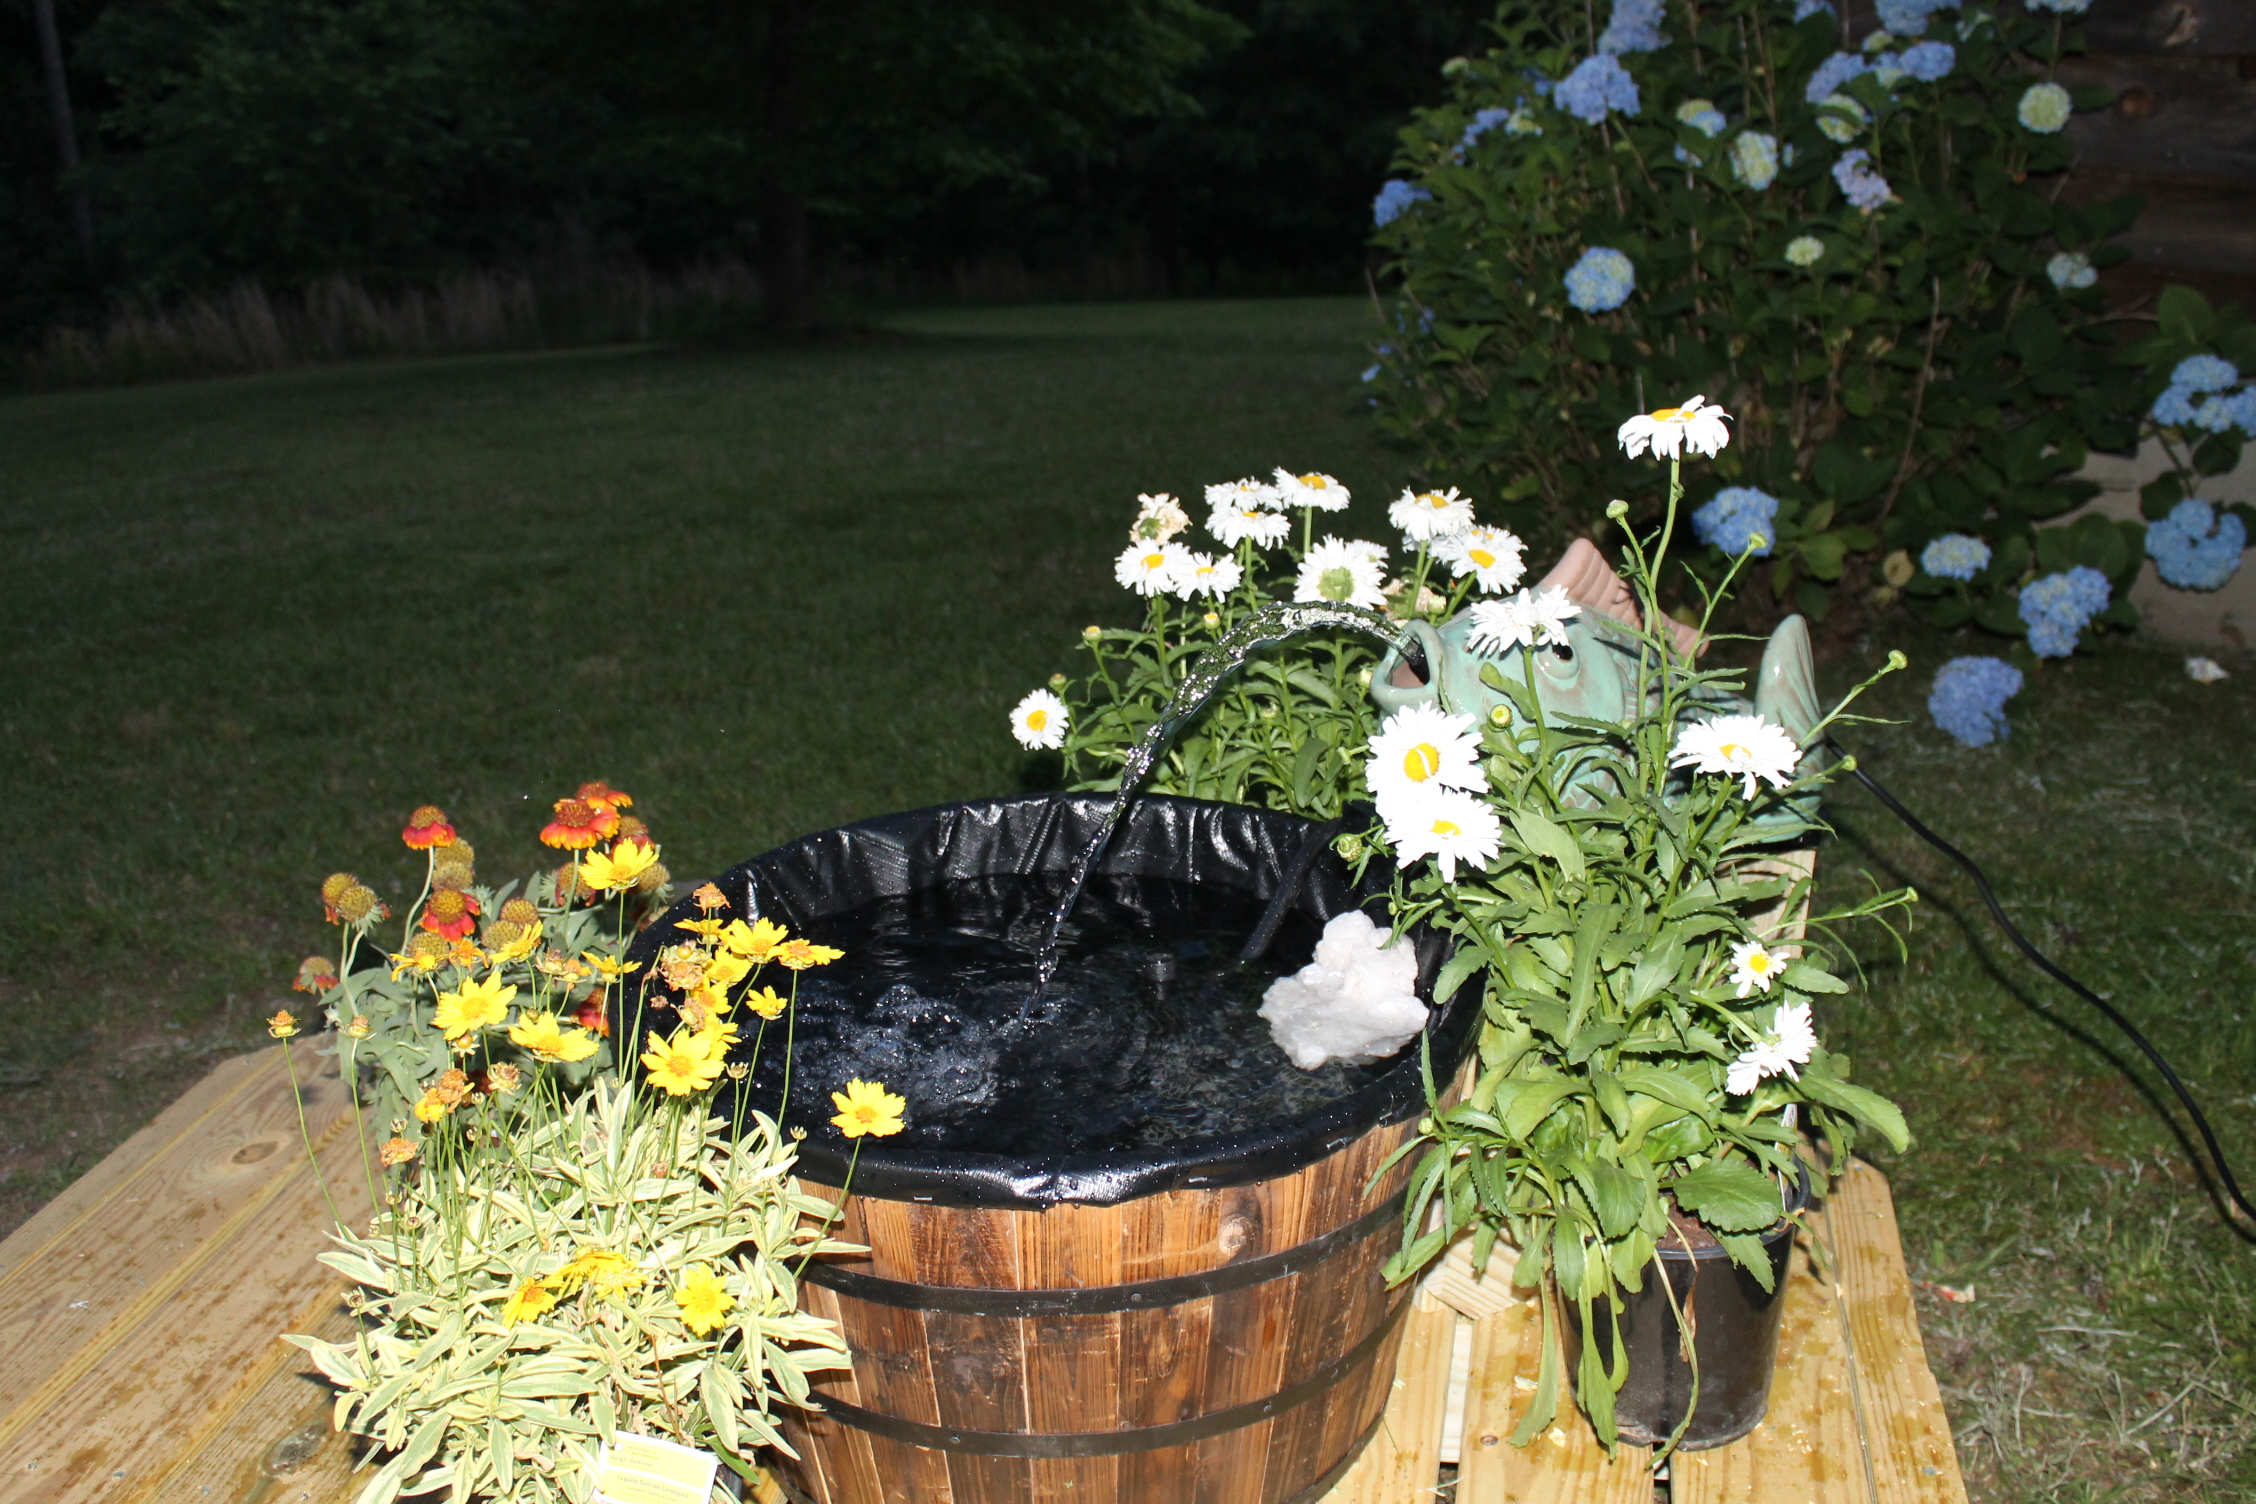 My Smartpond Project: Building A Container Fountain For a Butterfly Garden